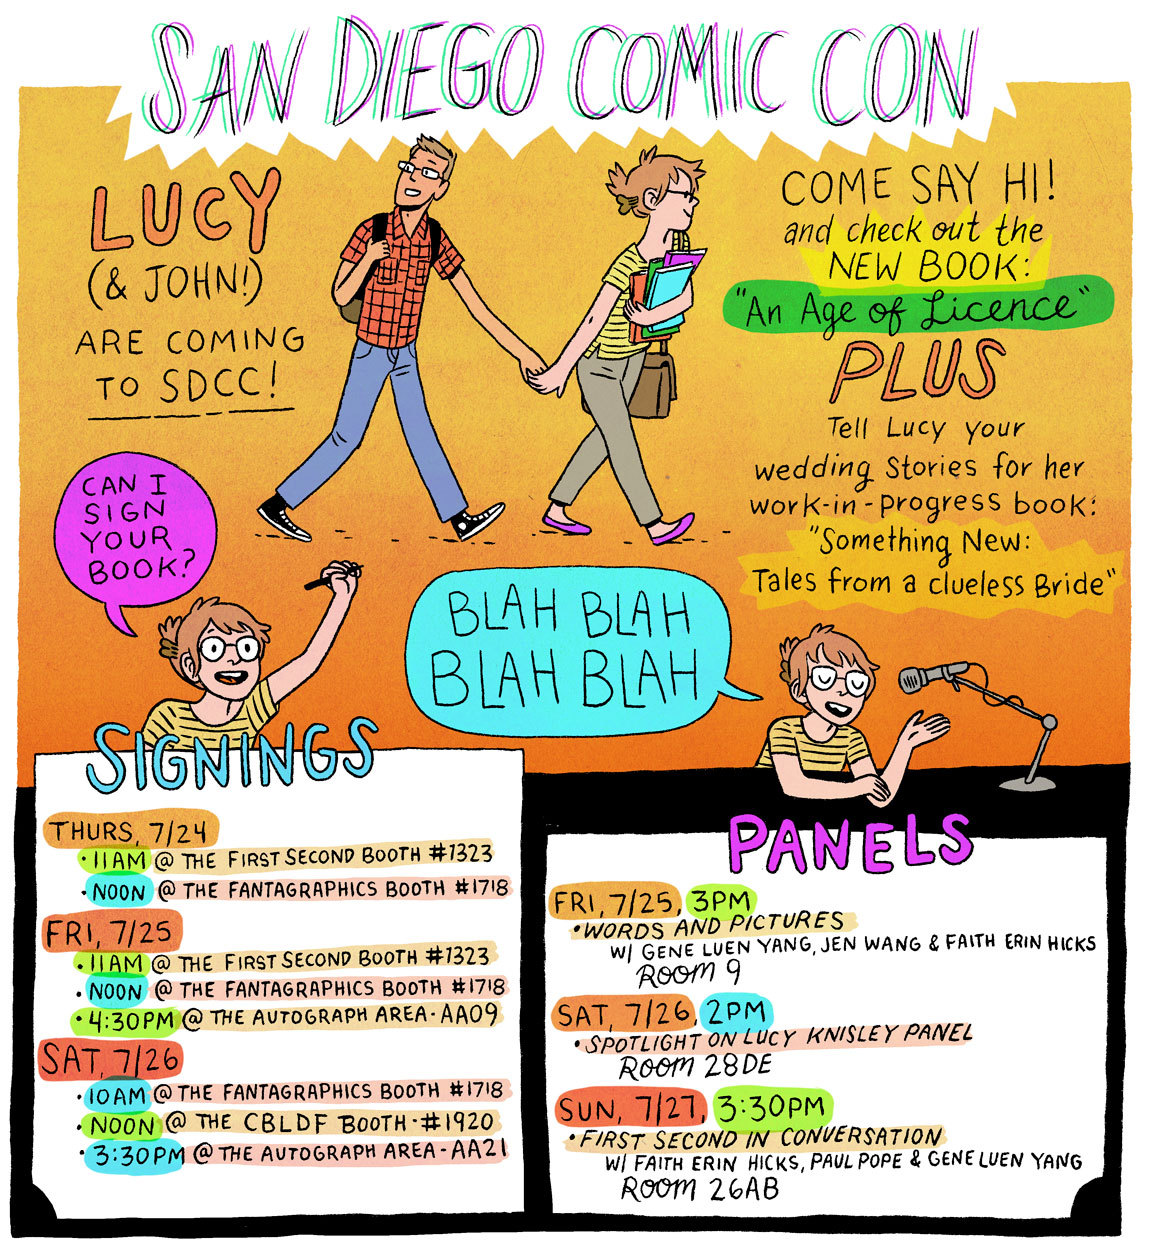 SDCC! I've never been! It's going to be a busy week, but I hope I get to eat all the food and meet lots of friendly people. A nice (if hectic!) change of pace from wedding planning and teaching and working! Please come say hello and speak to me in a soothing voice— I'm working on fou